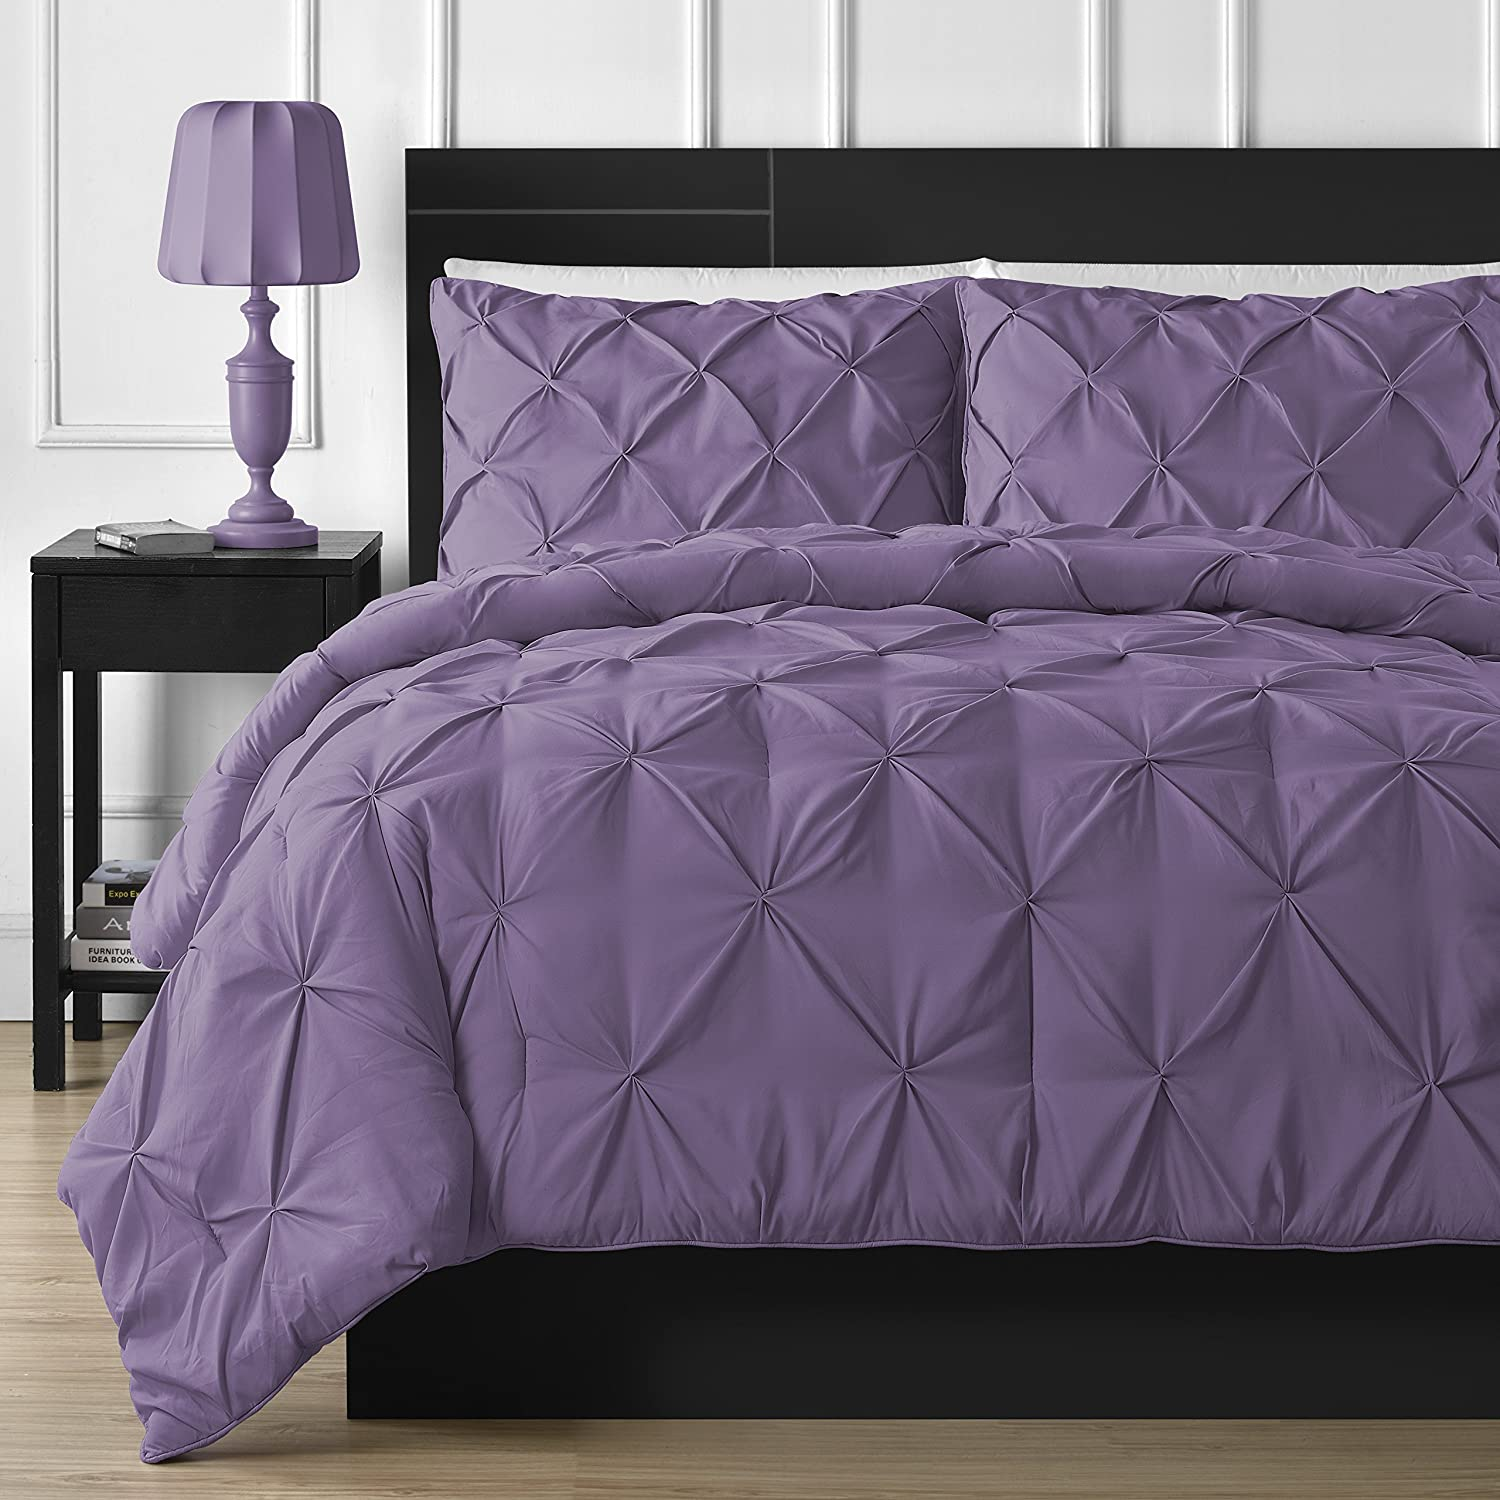 Double-Needle Durable Stitching Comfy Bedding 3-piece Pinch Pleat Comforter Set (Full, Purple